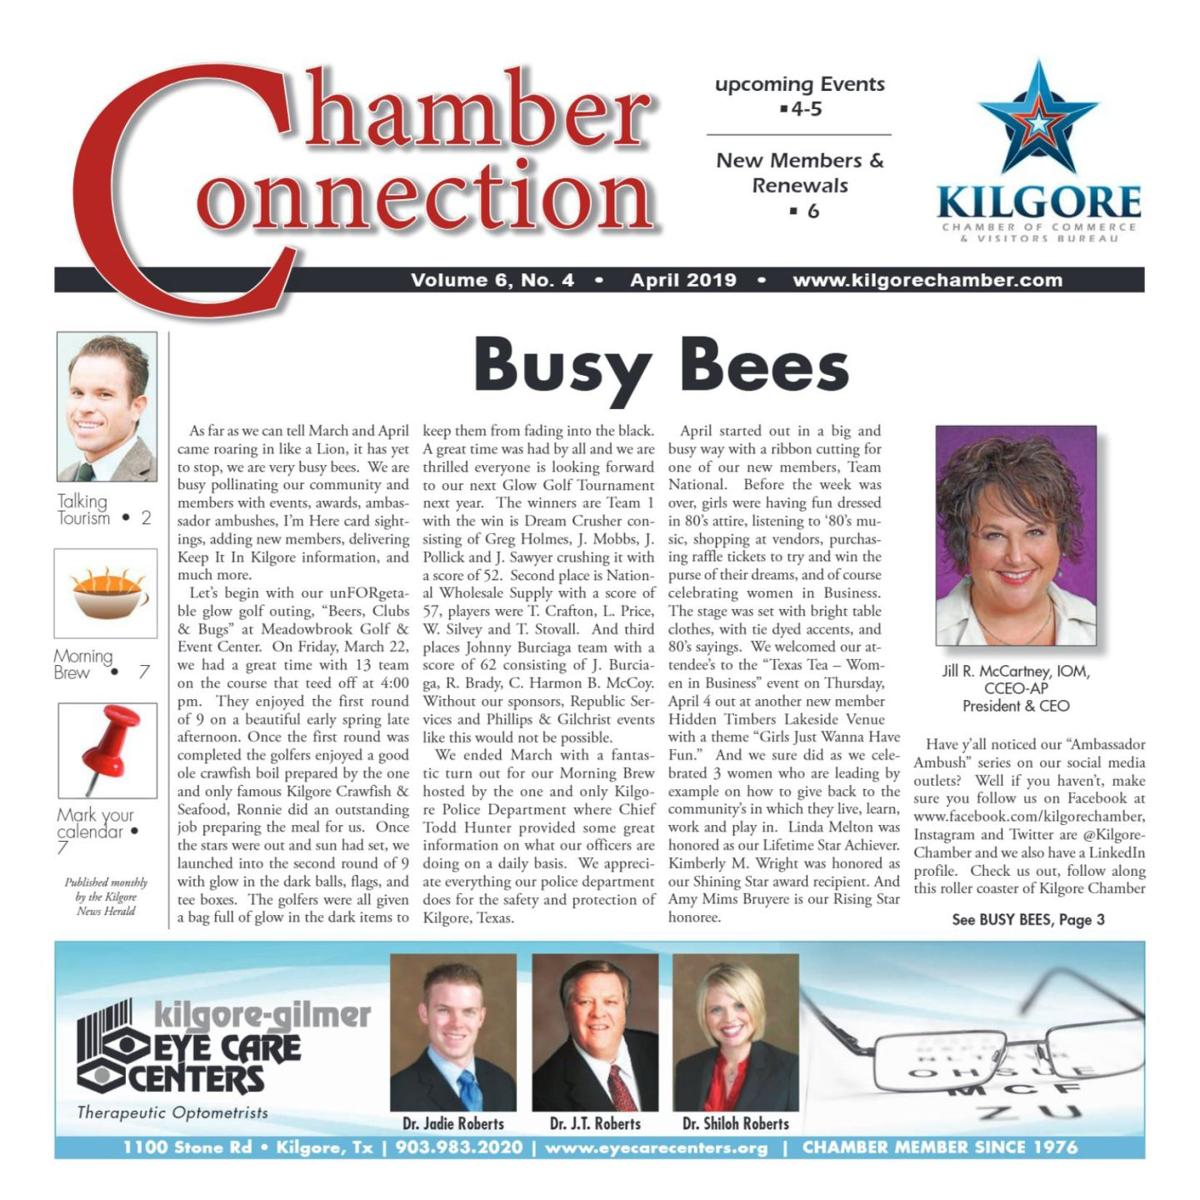 Chamber Connection 04-2019